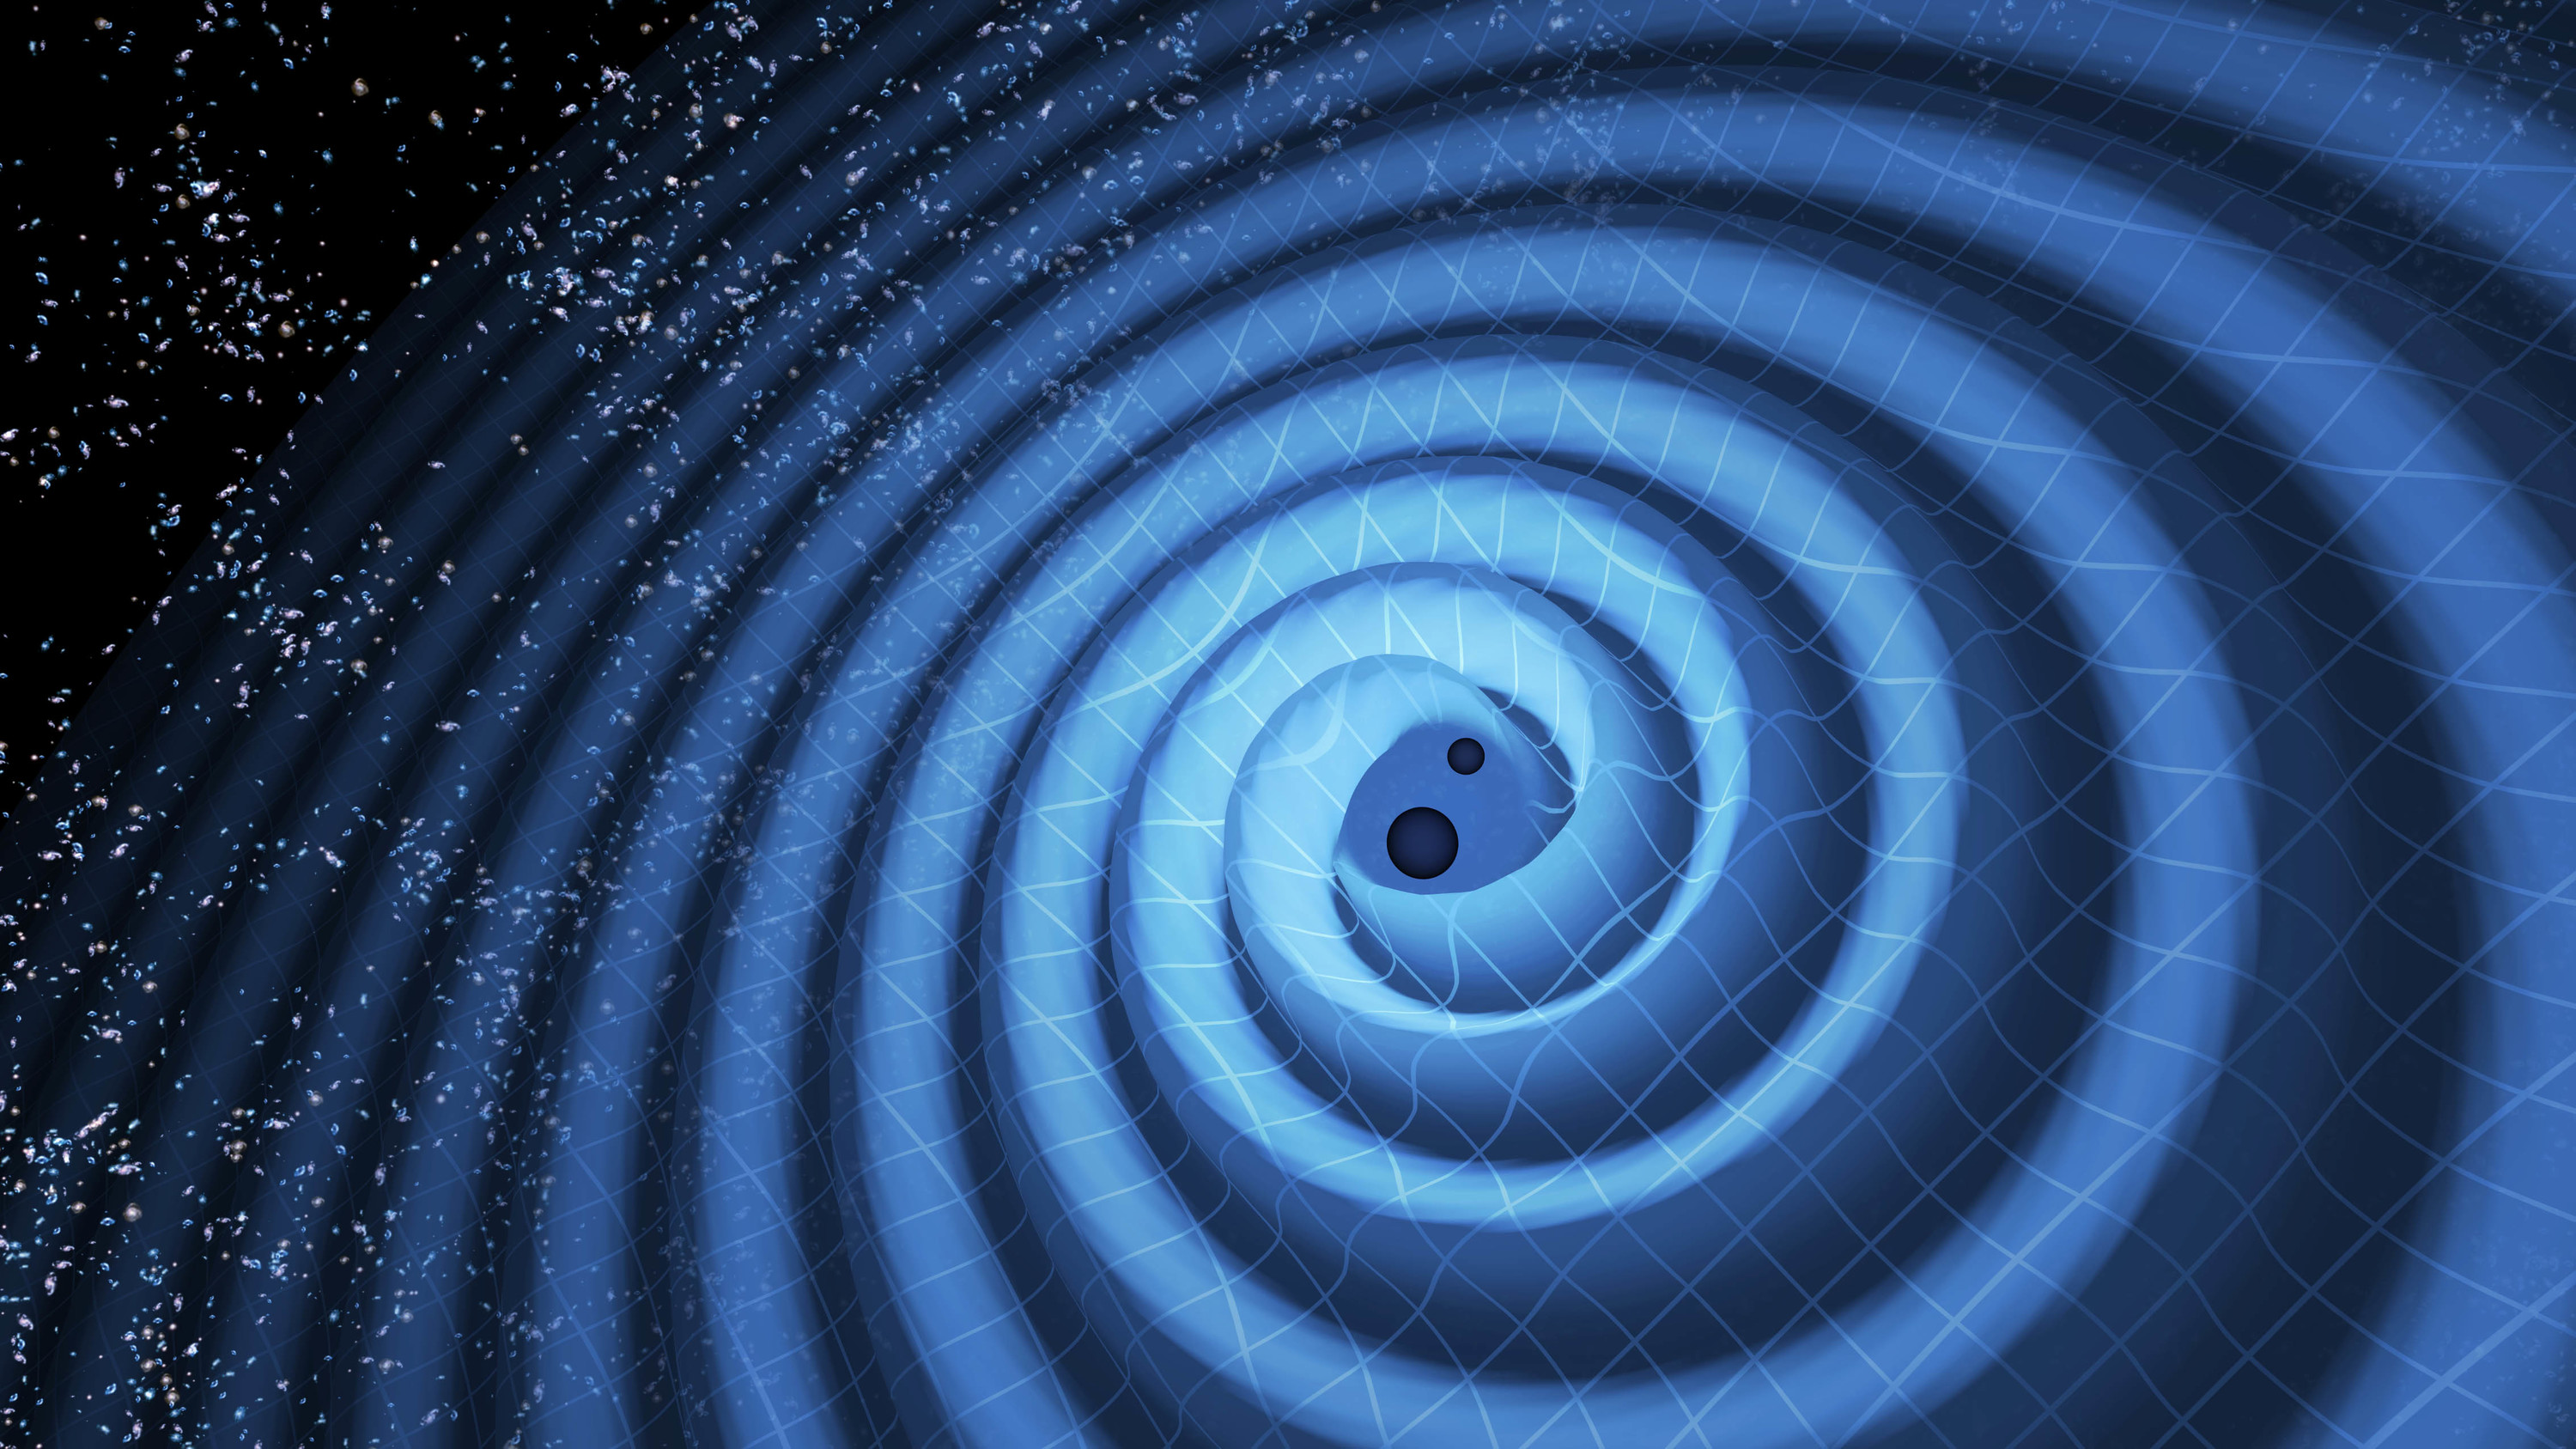 Did a holographic phase transition in the early universe release gravitational waves? thumbnail